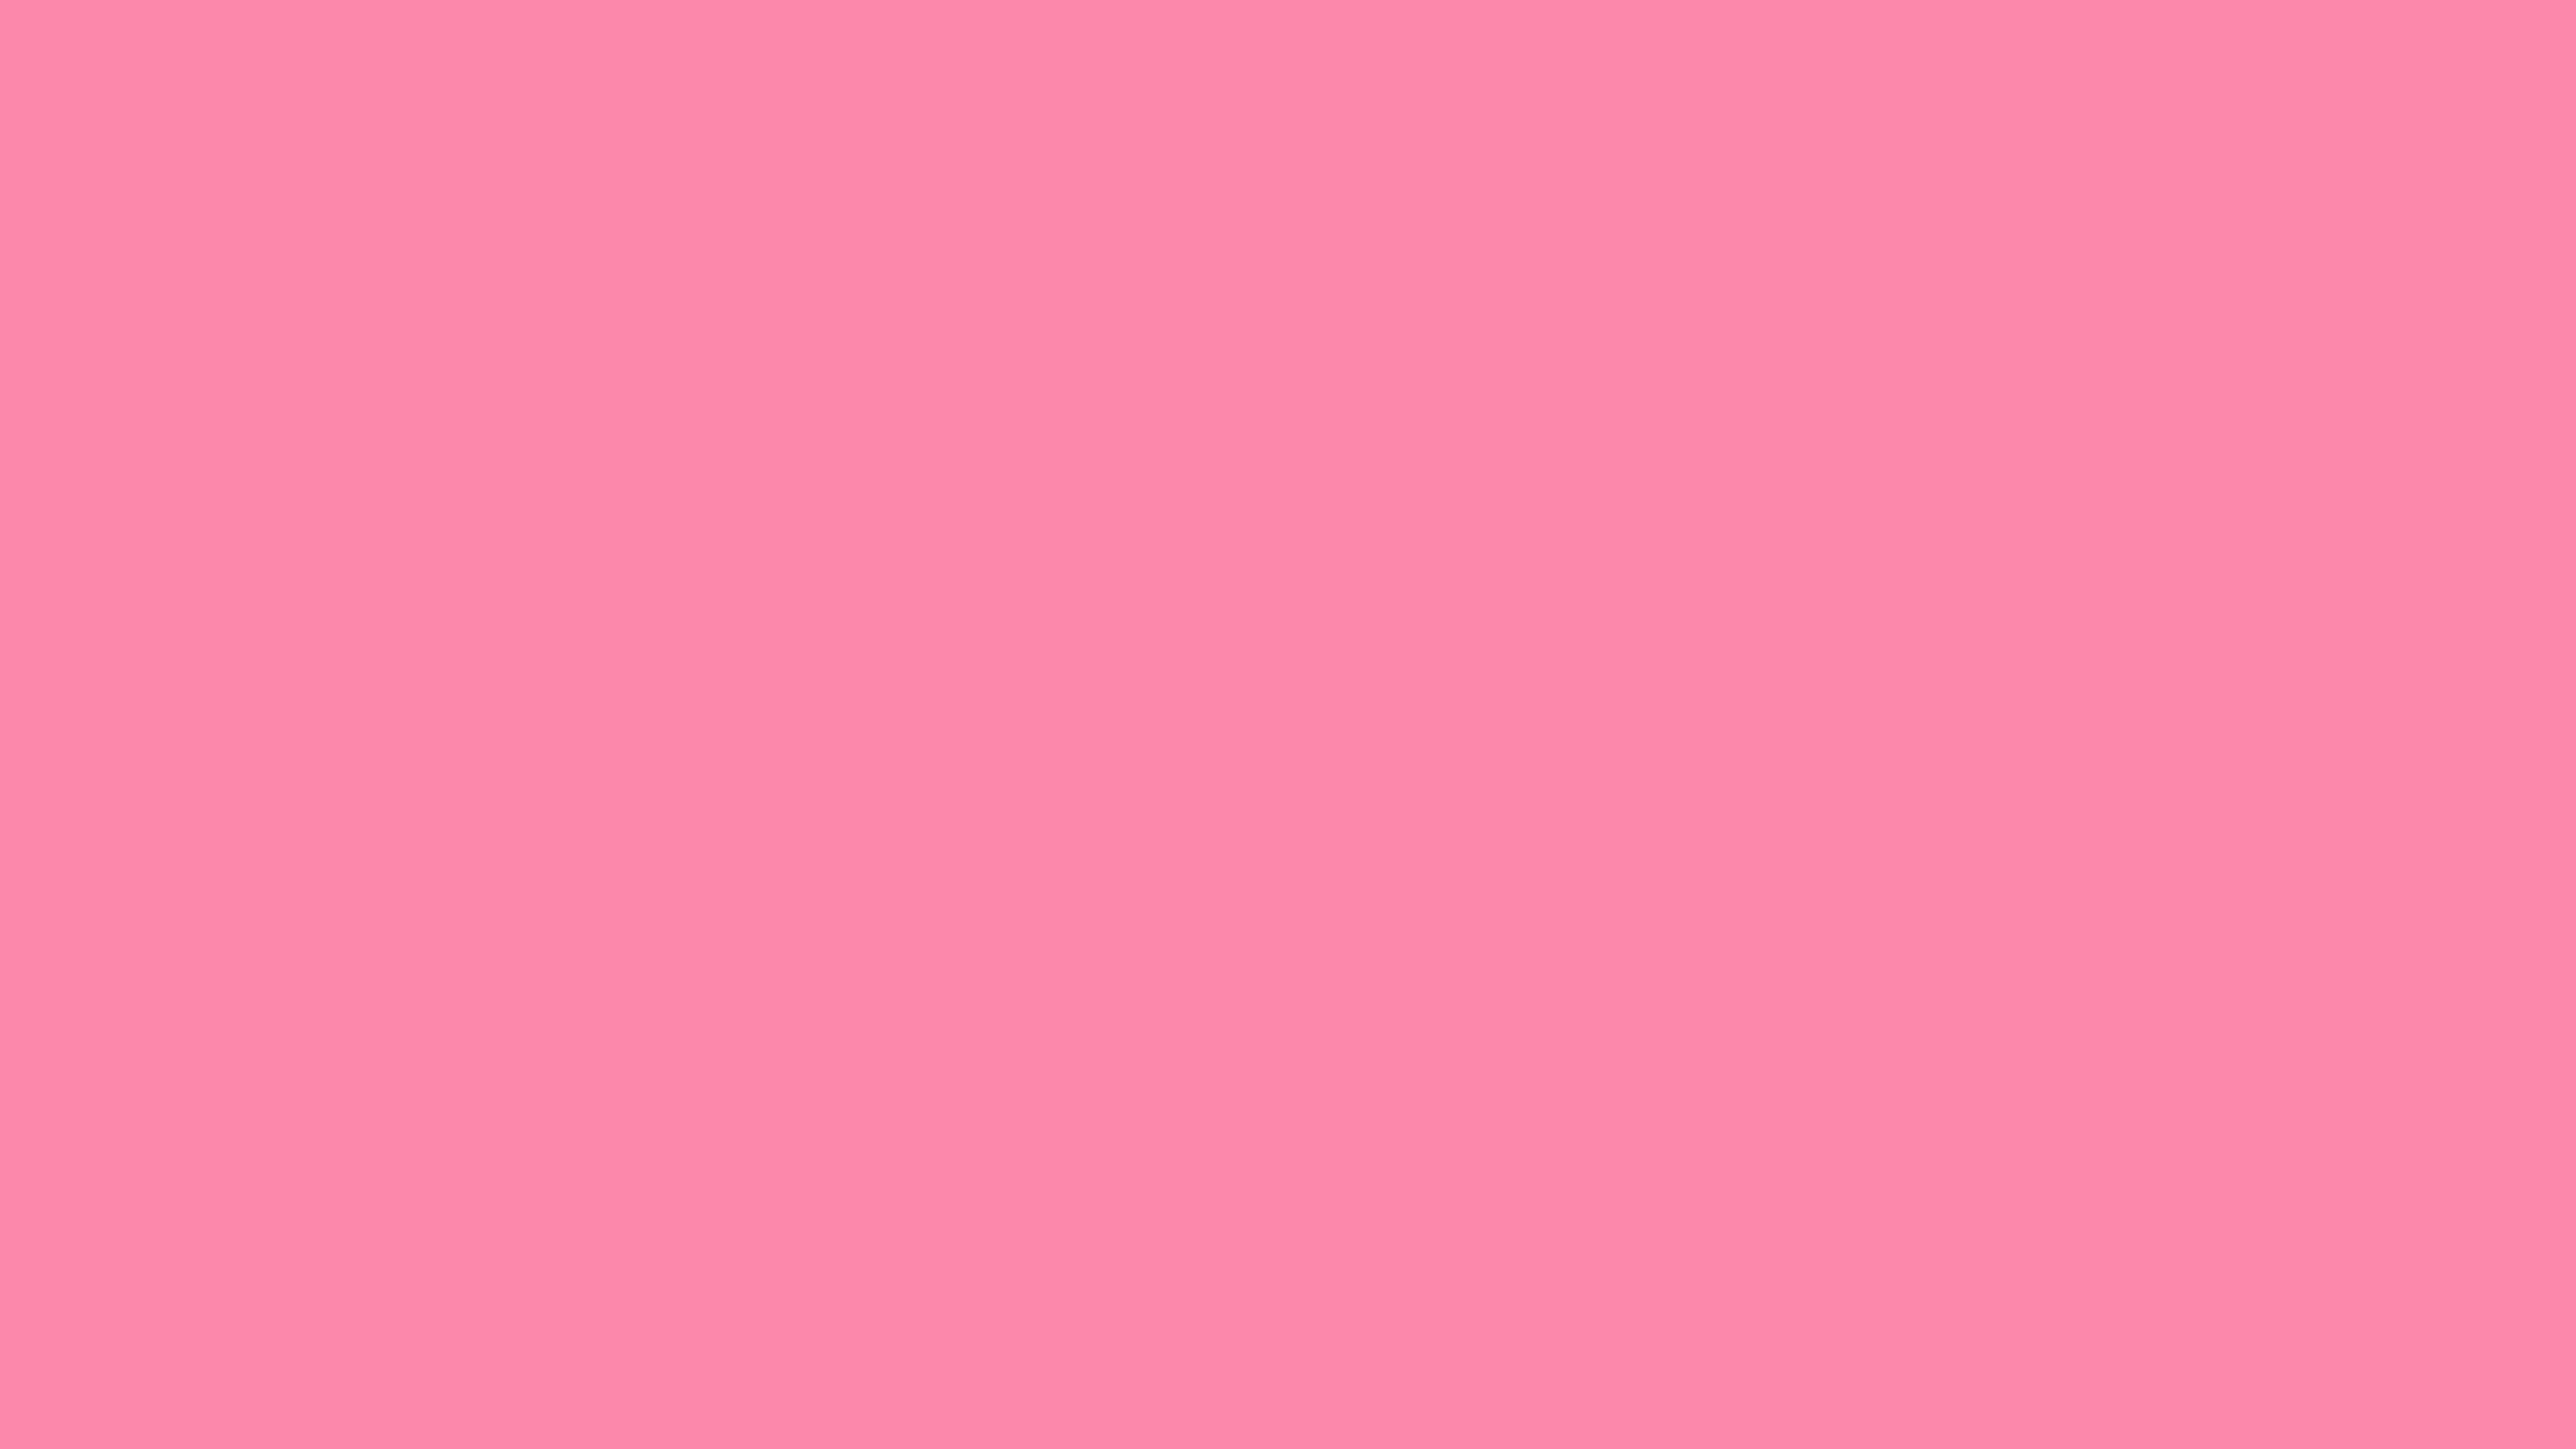 4096x2304 Tickle Me Pink Solid Color Background